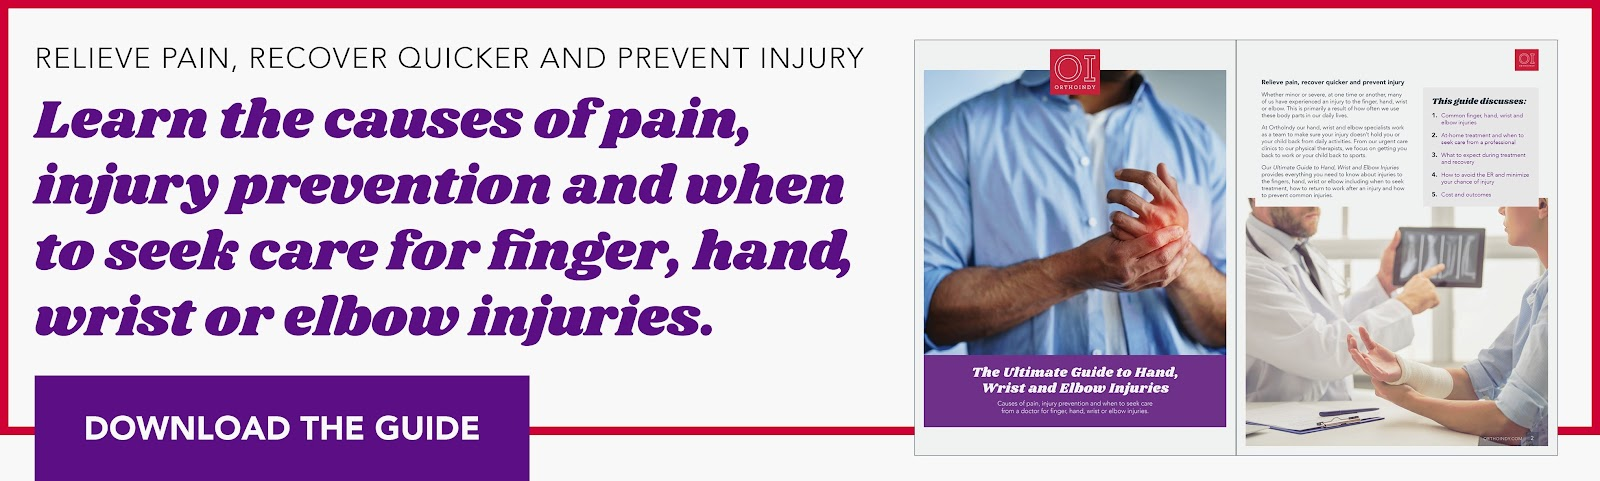 Relieve pain from hand, wrist or elbow injuries